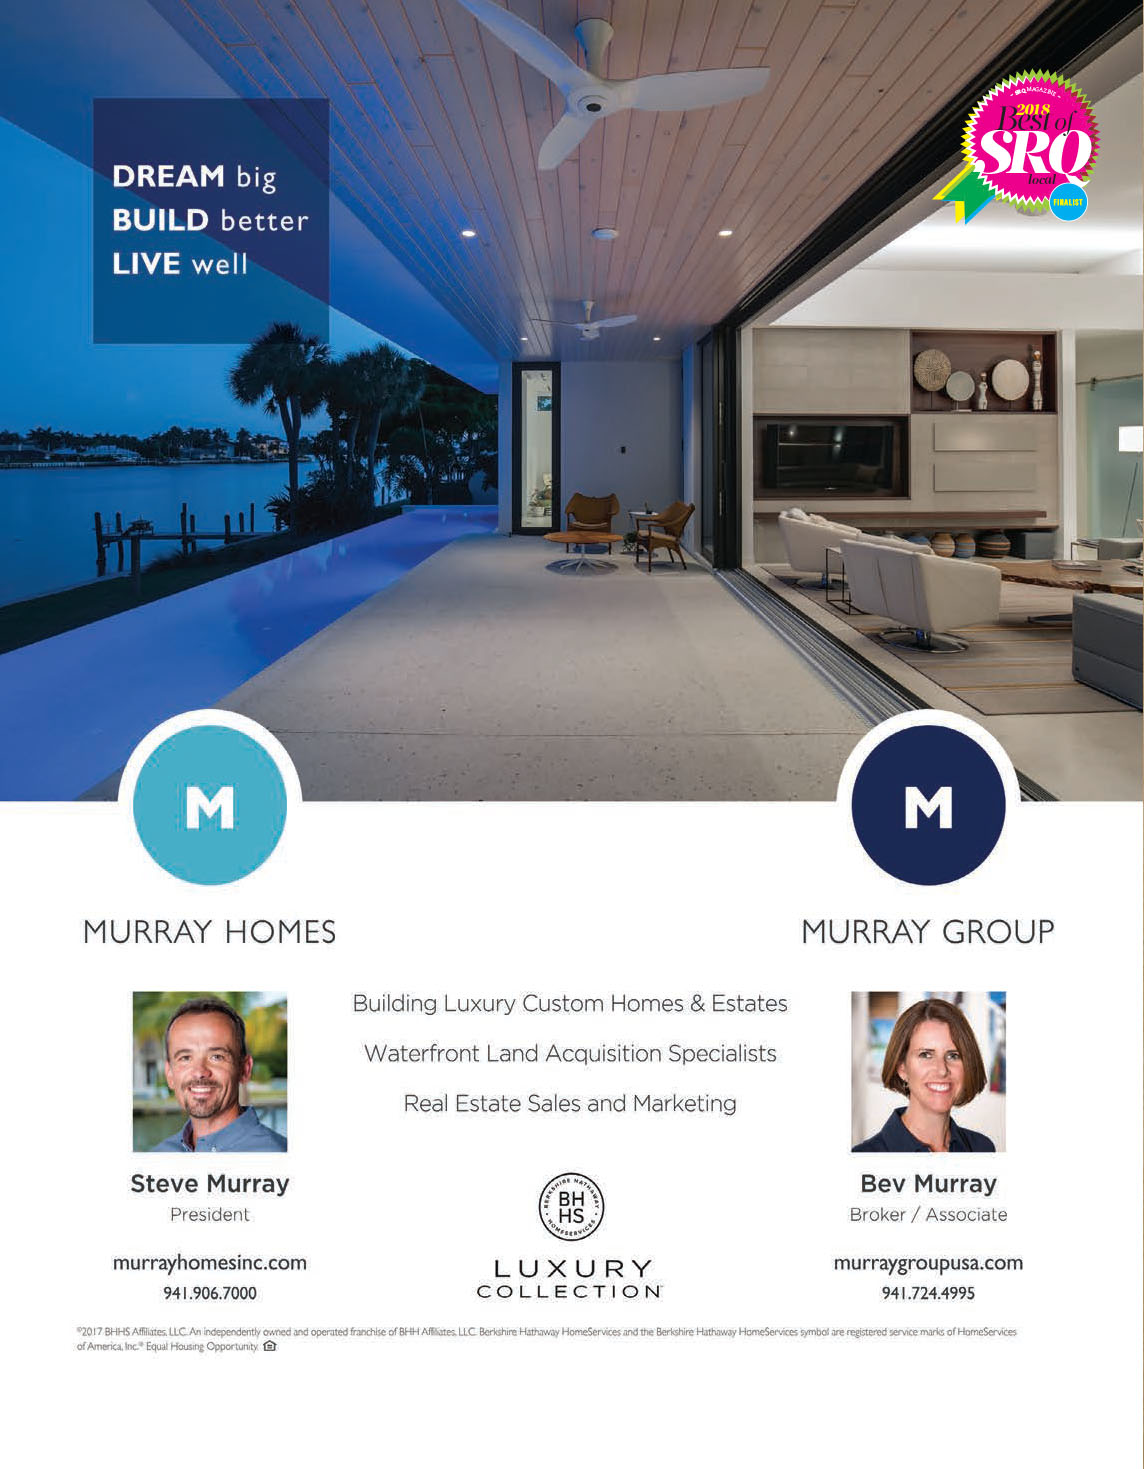 Murray Homes Gains Recognition As A 2018 SRQ Best Of Local Finalist